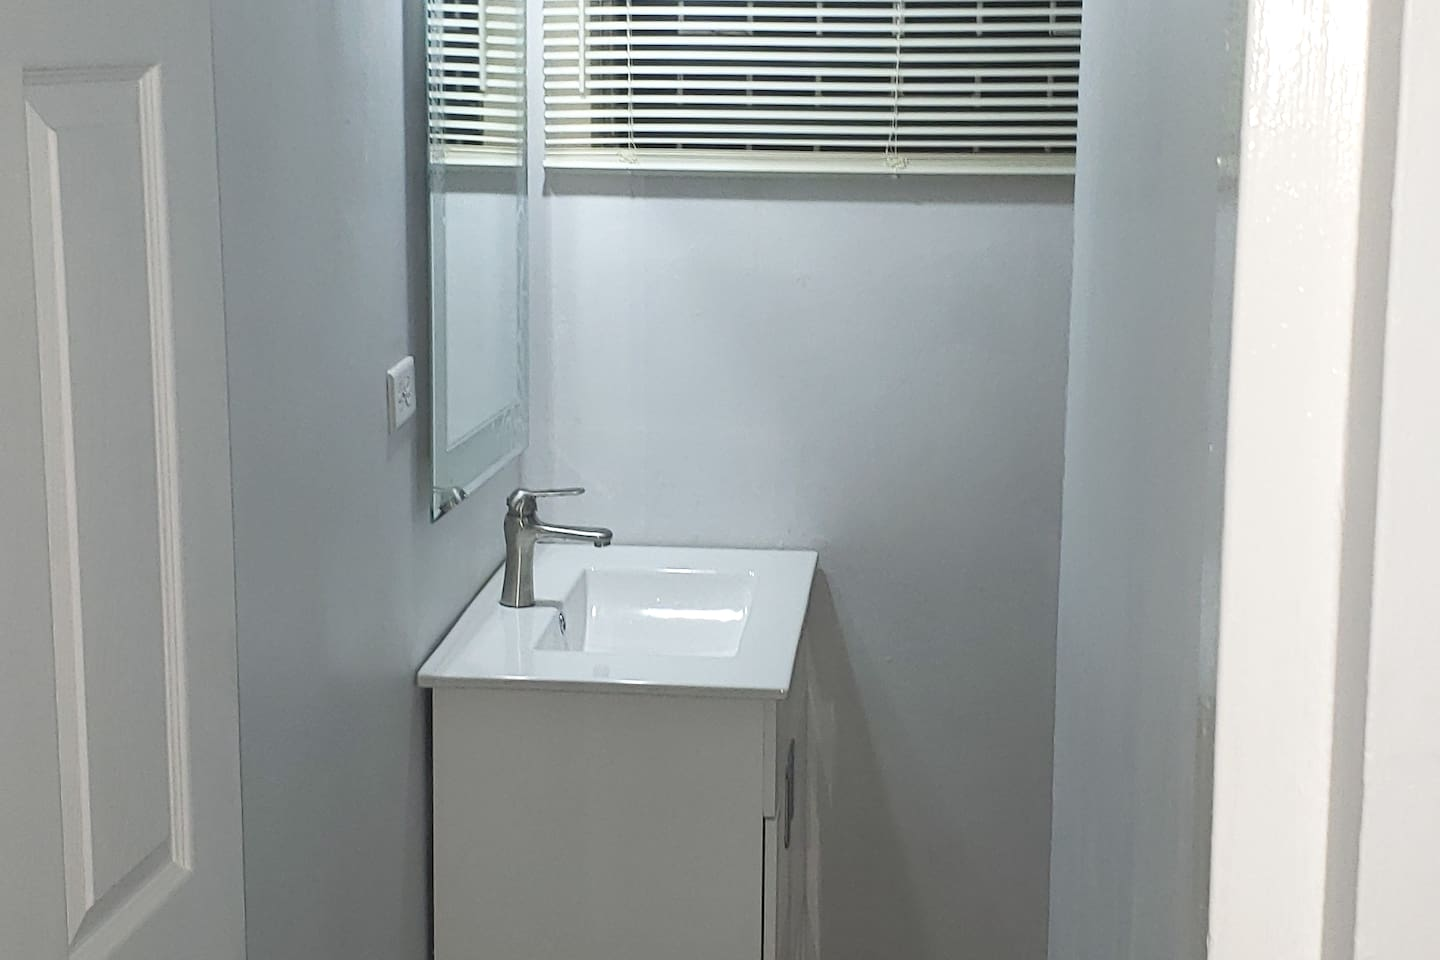 Very modern fixtures in a clean and comfortable environment.